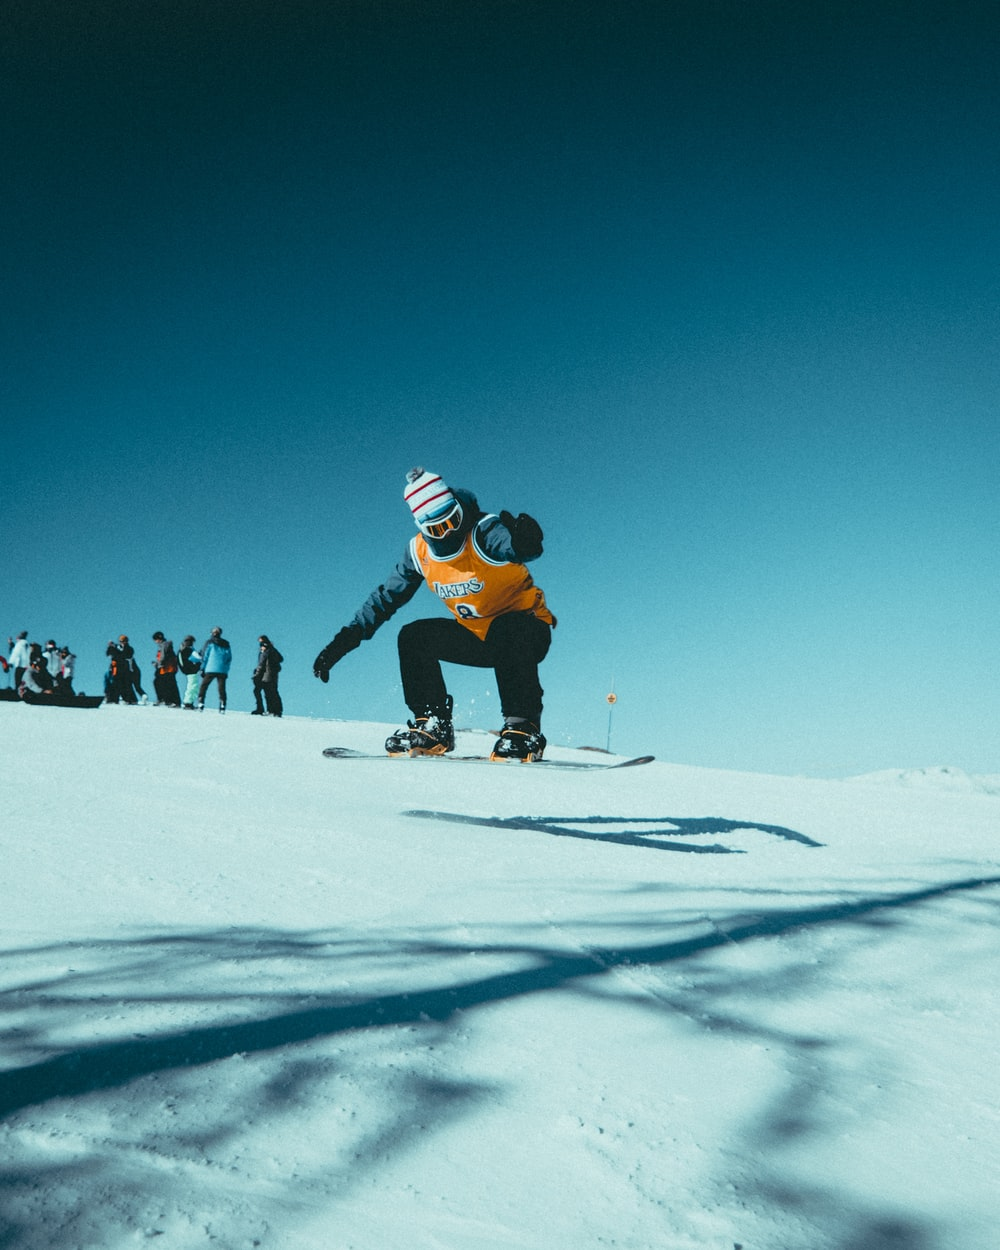 man skiing on snowy field during daytime